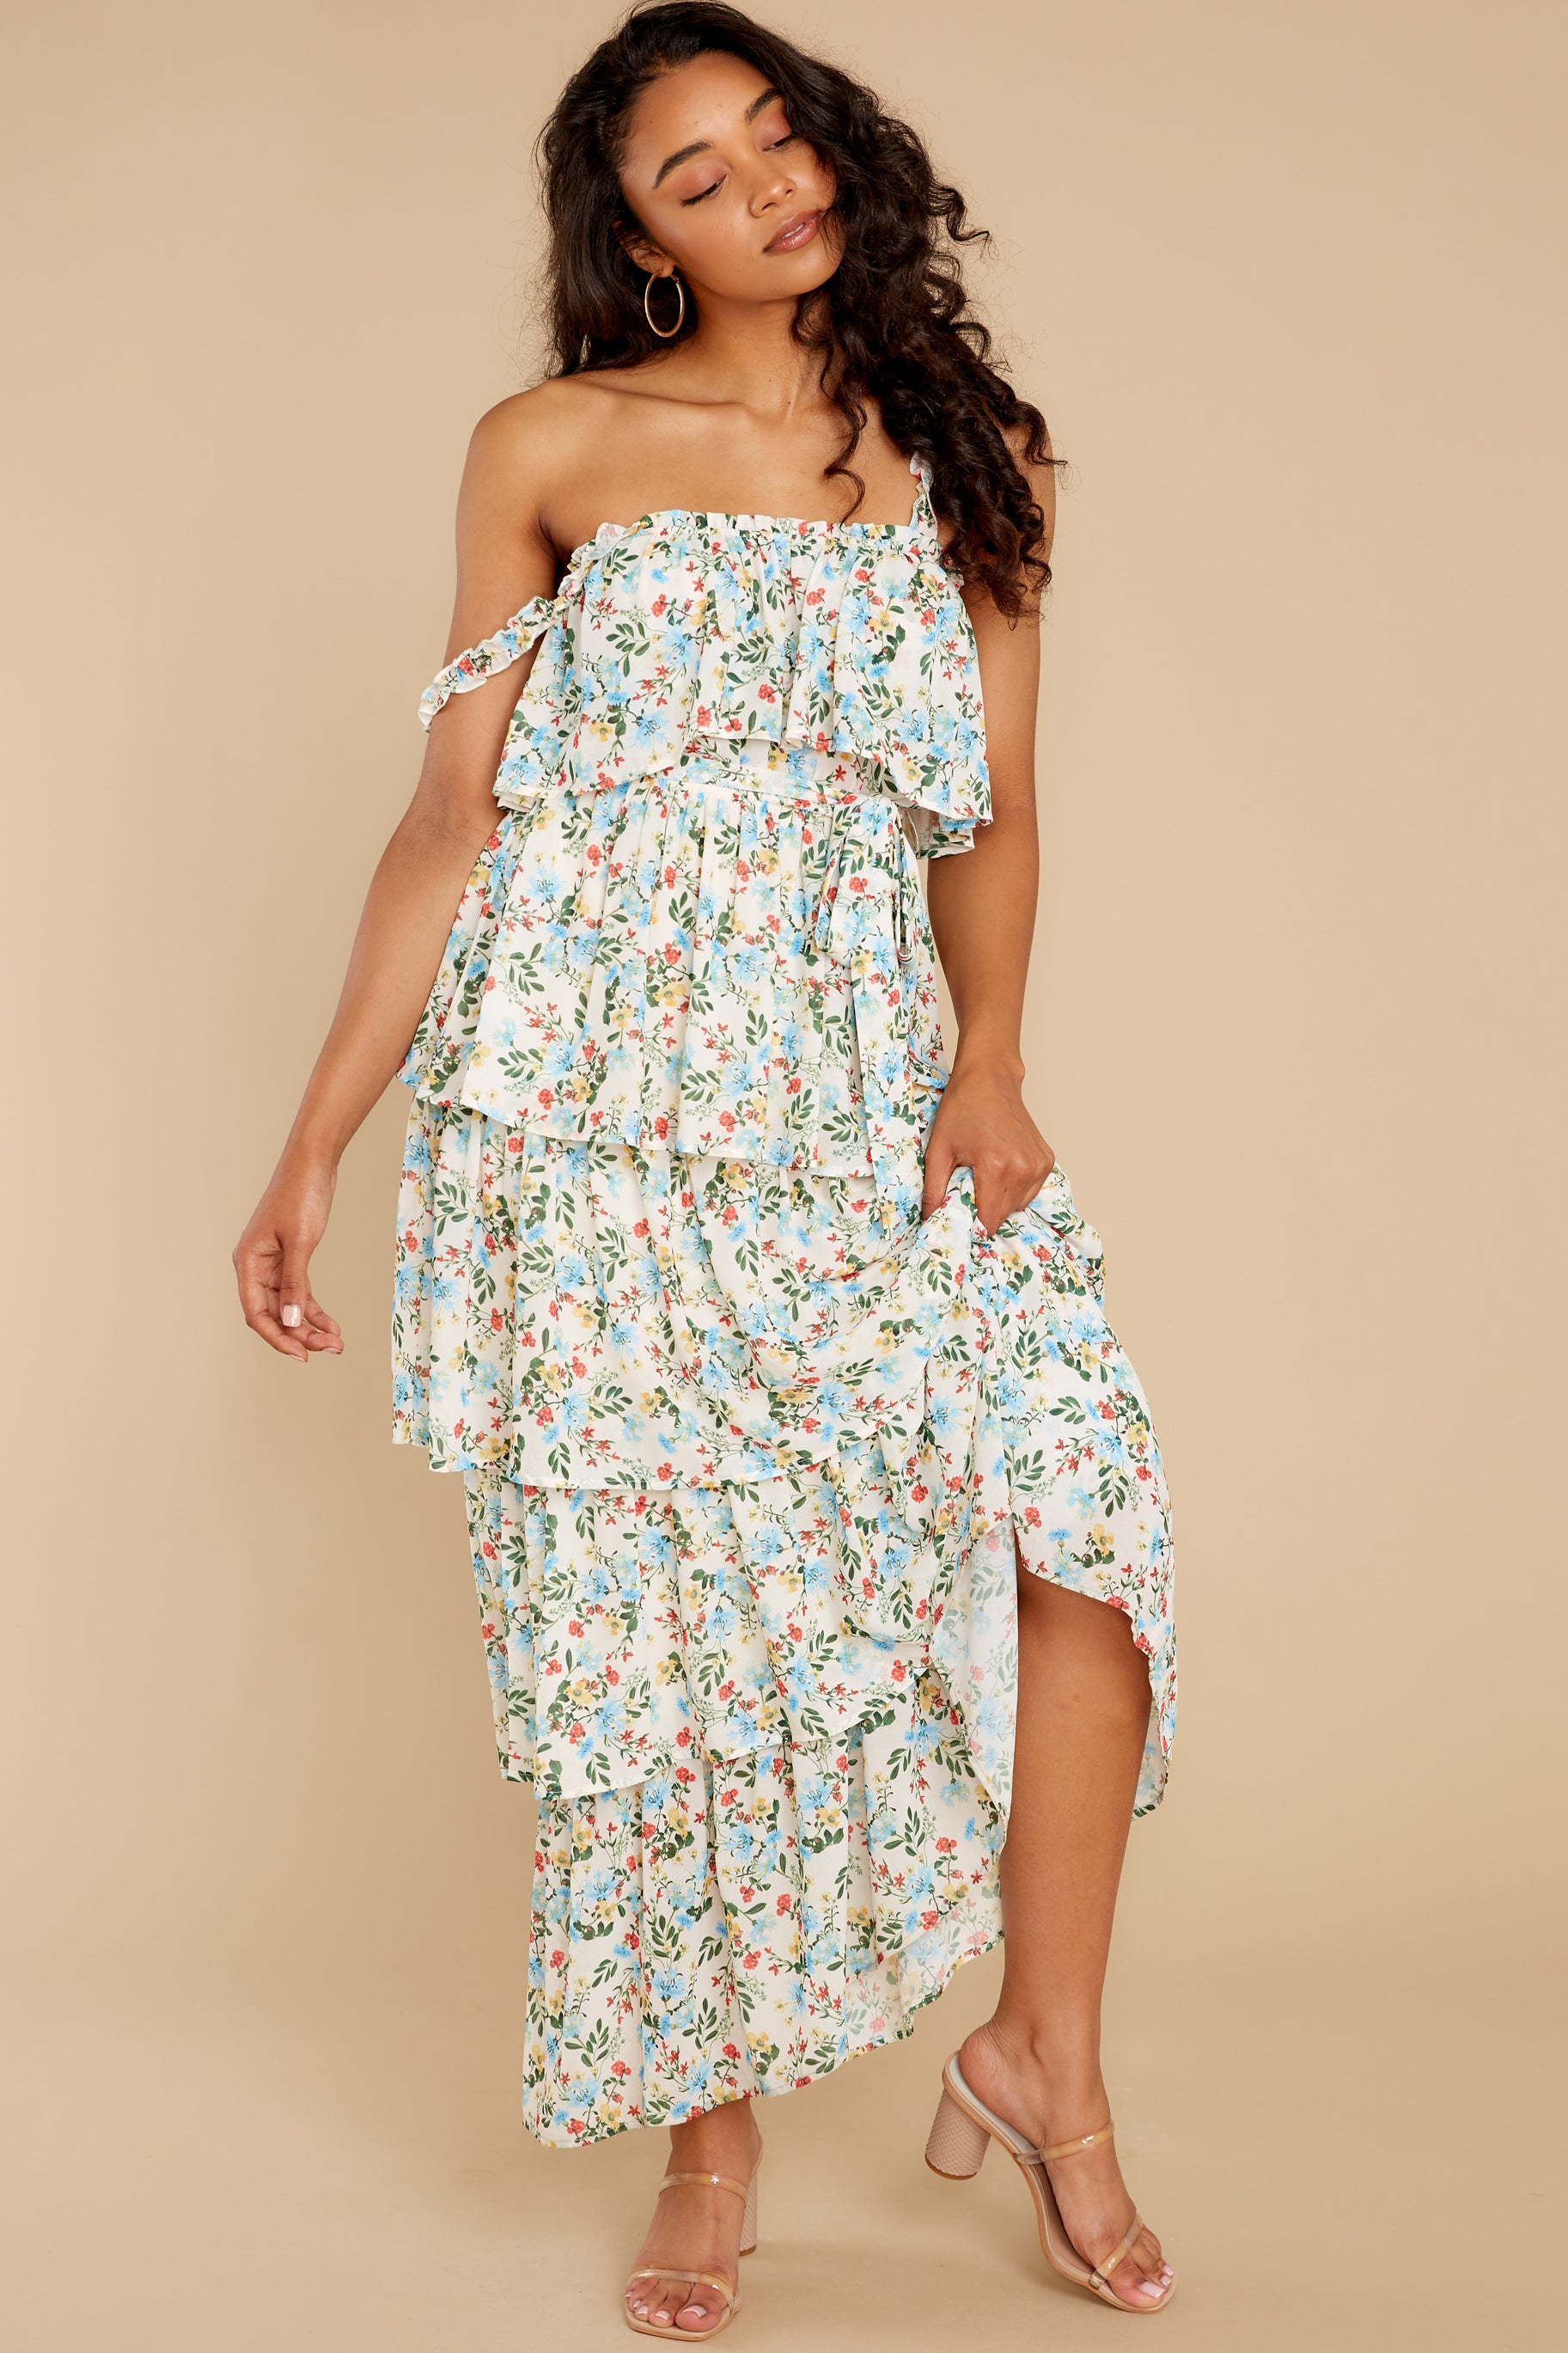 7 Magical Means Ivory Floral Print Maxi Dress at reddress.com